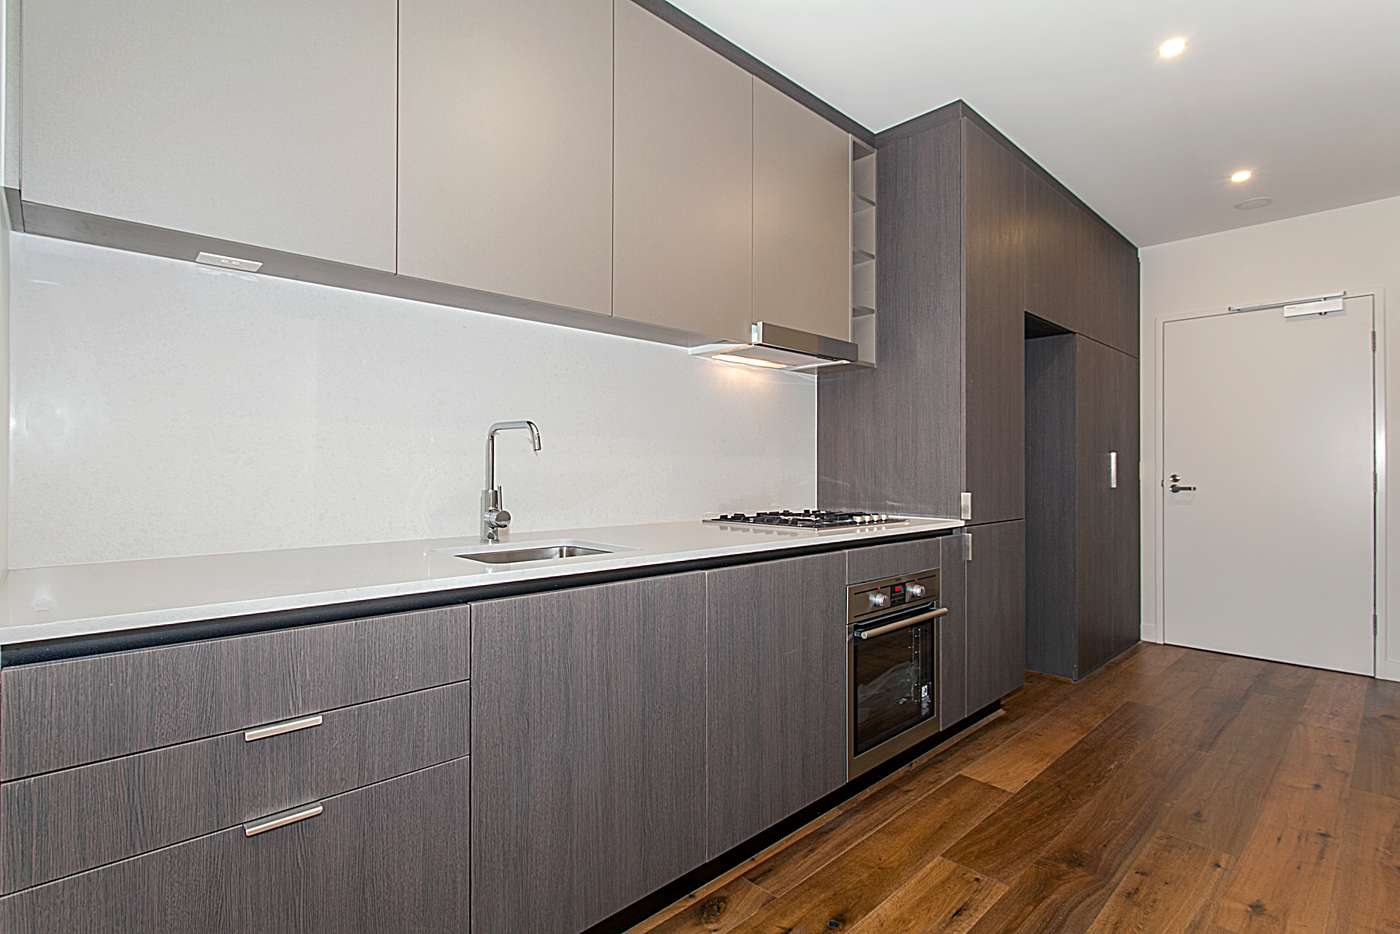 Fifth view of Homely apartment listing, 310/11 Stawell Street, North Melbourne VIC 3051